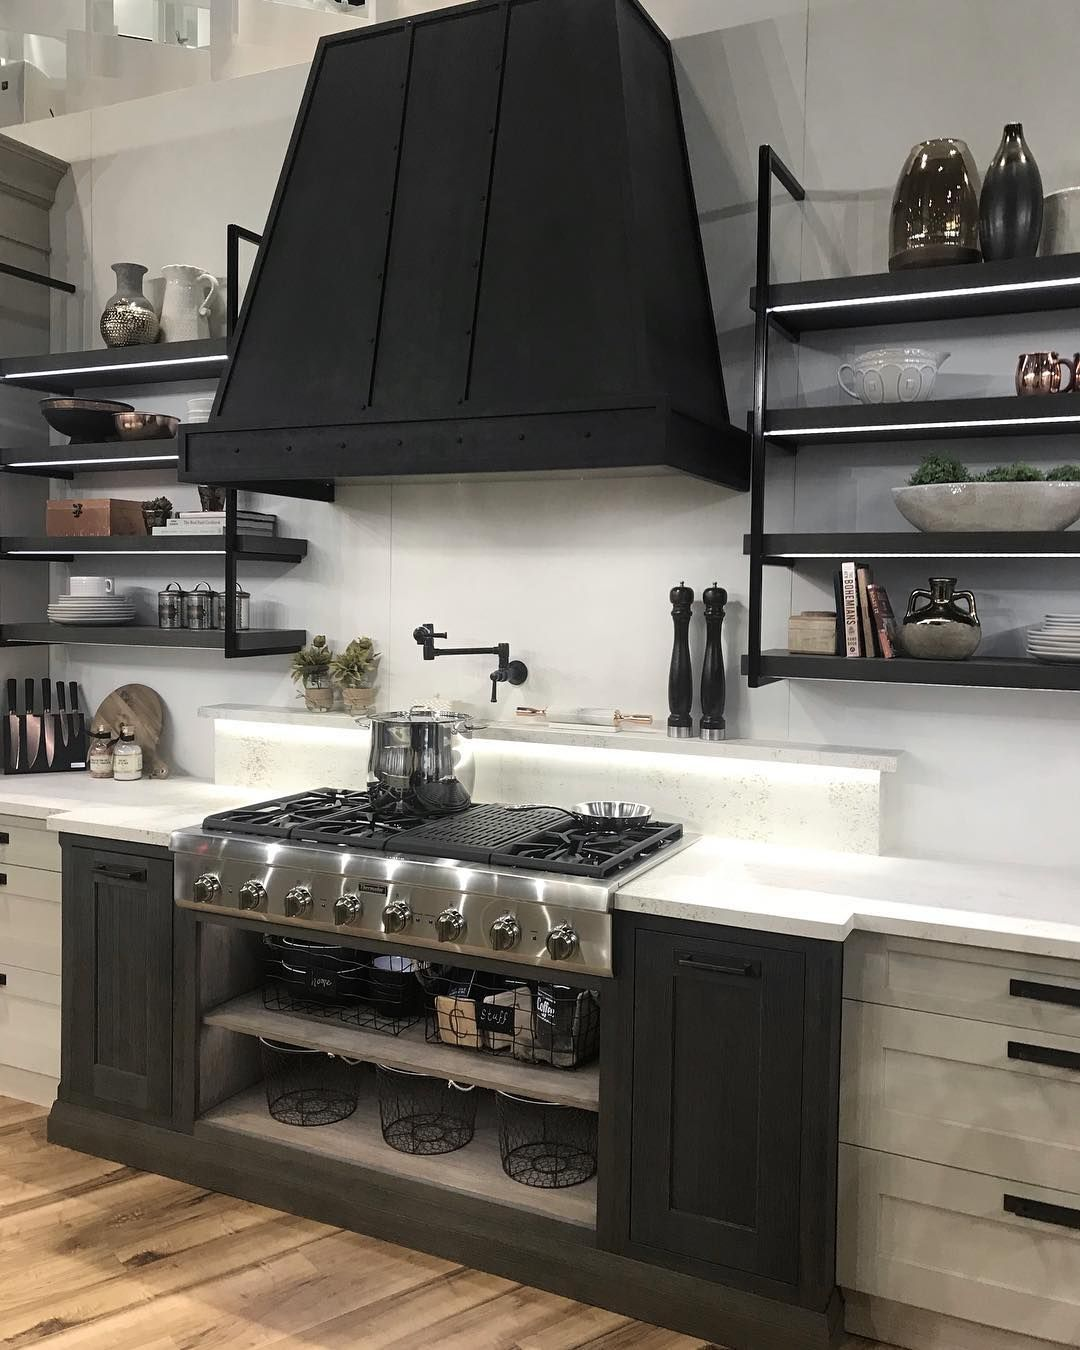 Cabico Cabinetry Booth At Kbis 2018 Kitchen Cabinet Trends Kitchen Design Trends Kitchen Trends